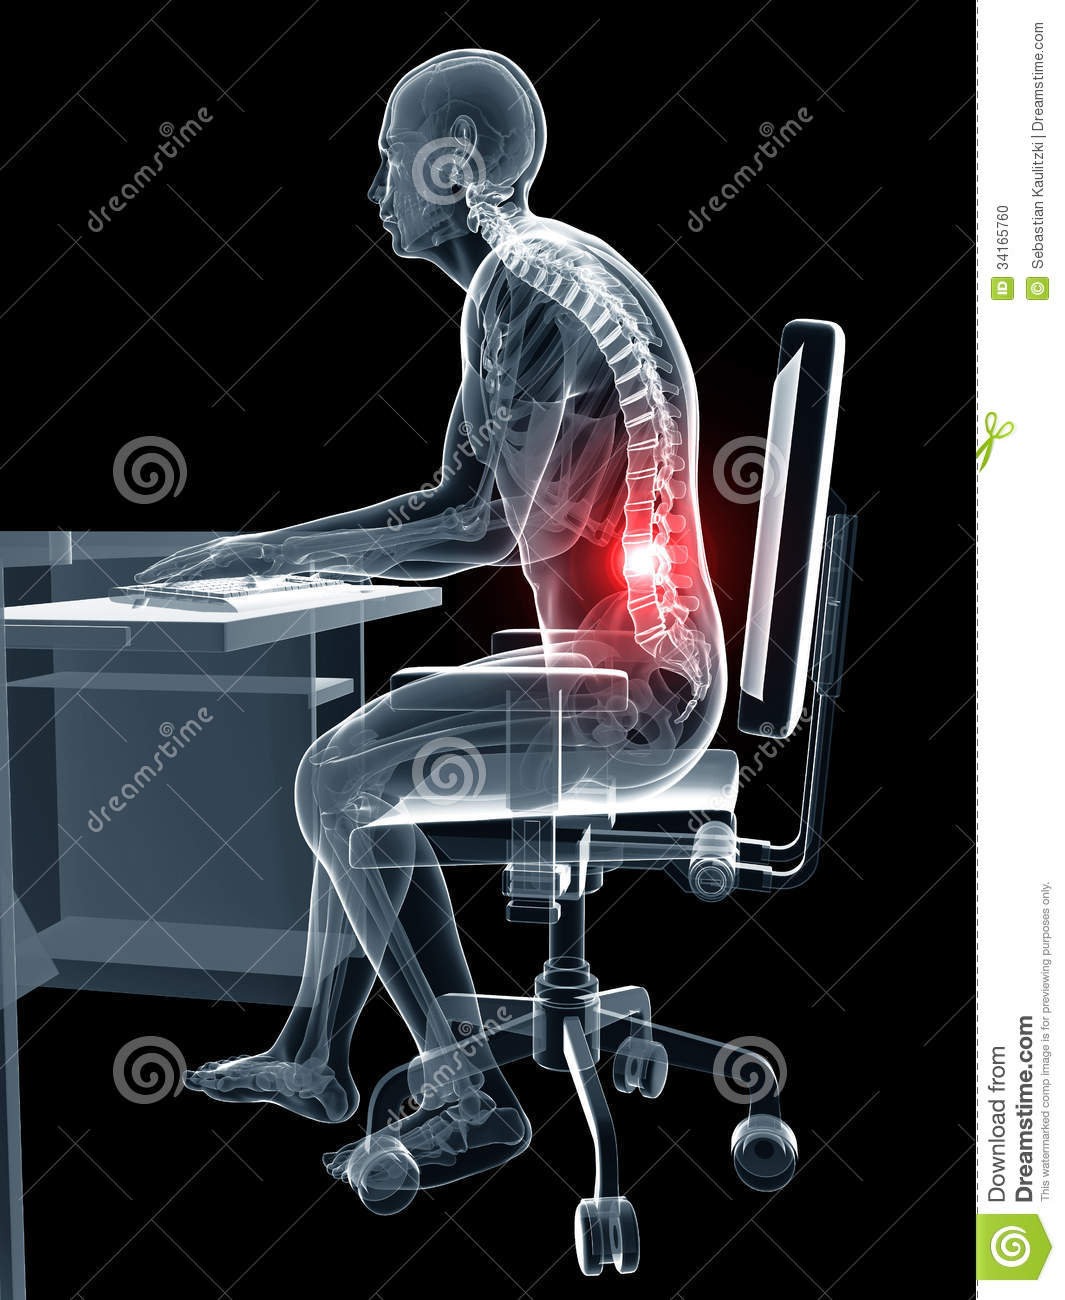 office chair posture standard height wrong sitting stock photo - image: 34165760